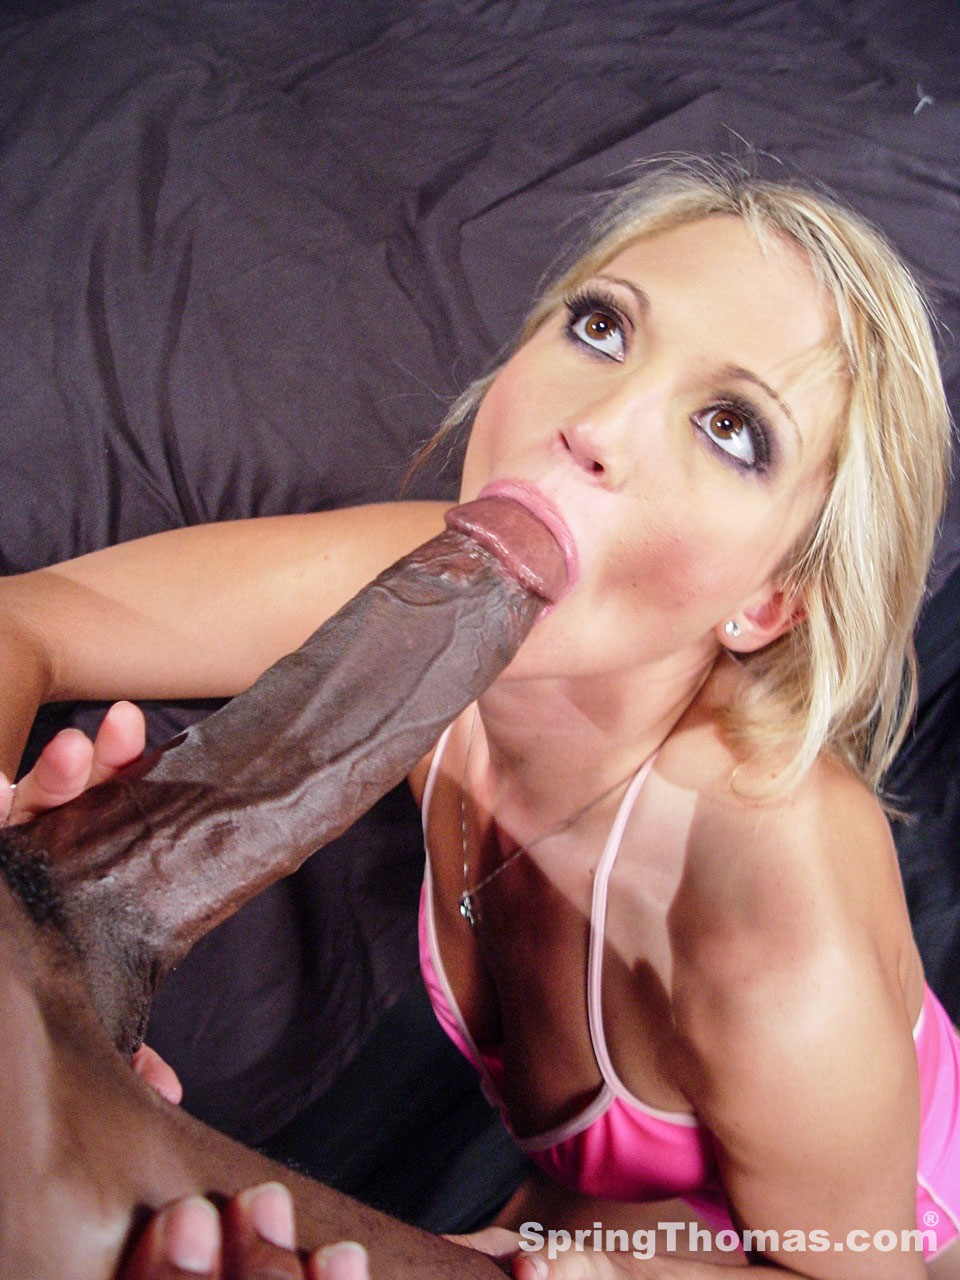 Spring thomas and mandingo ii interracial pictures